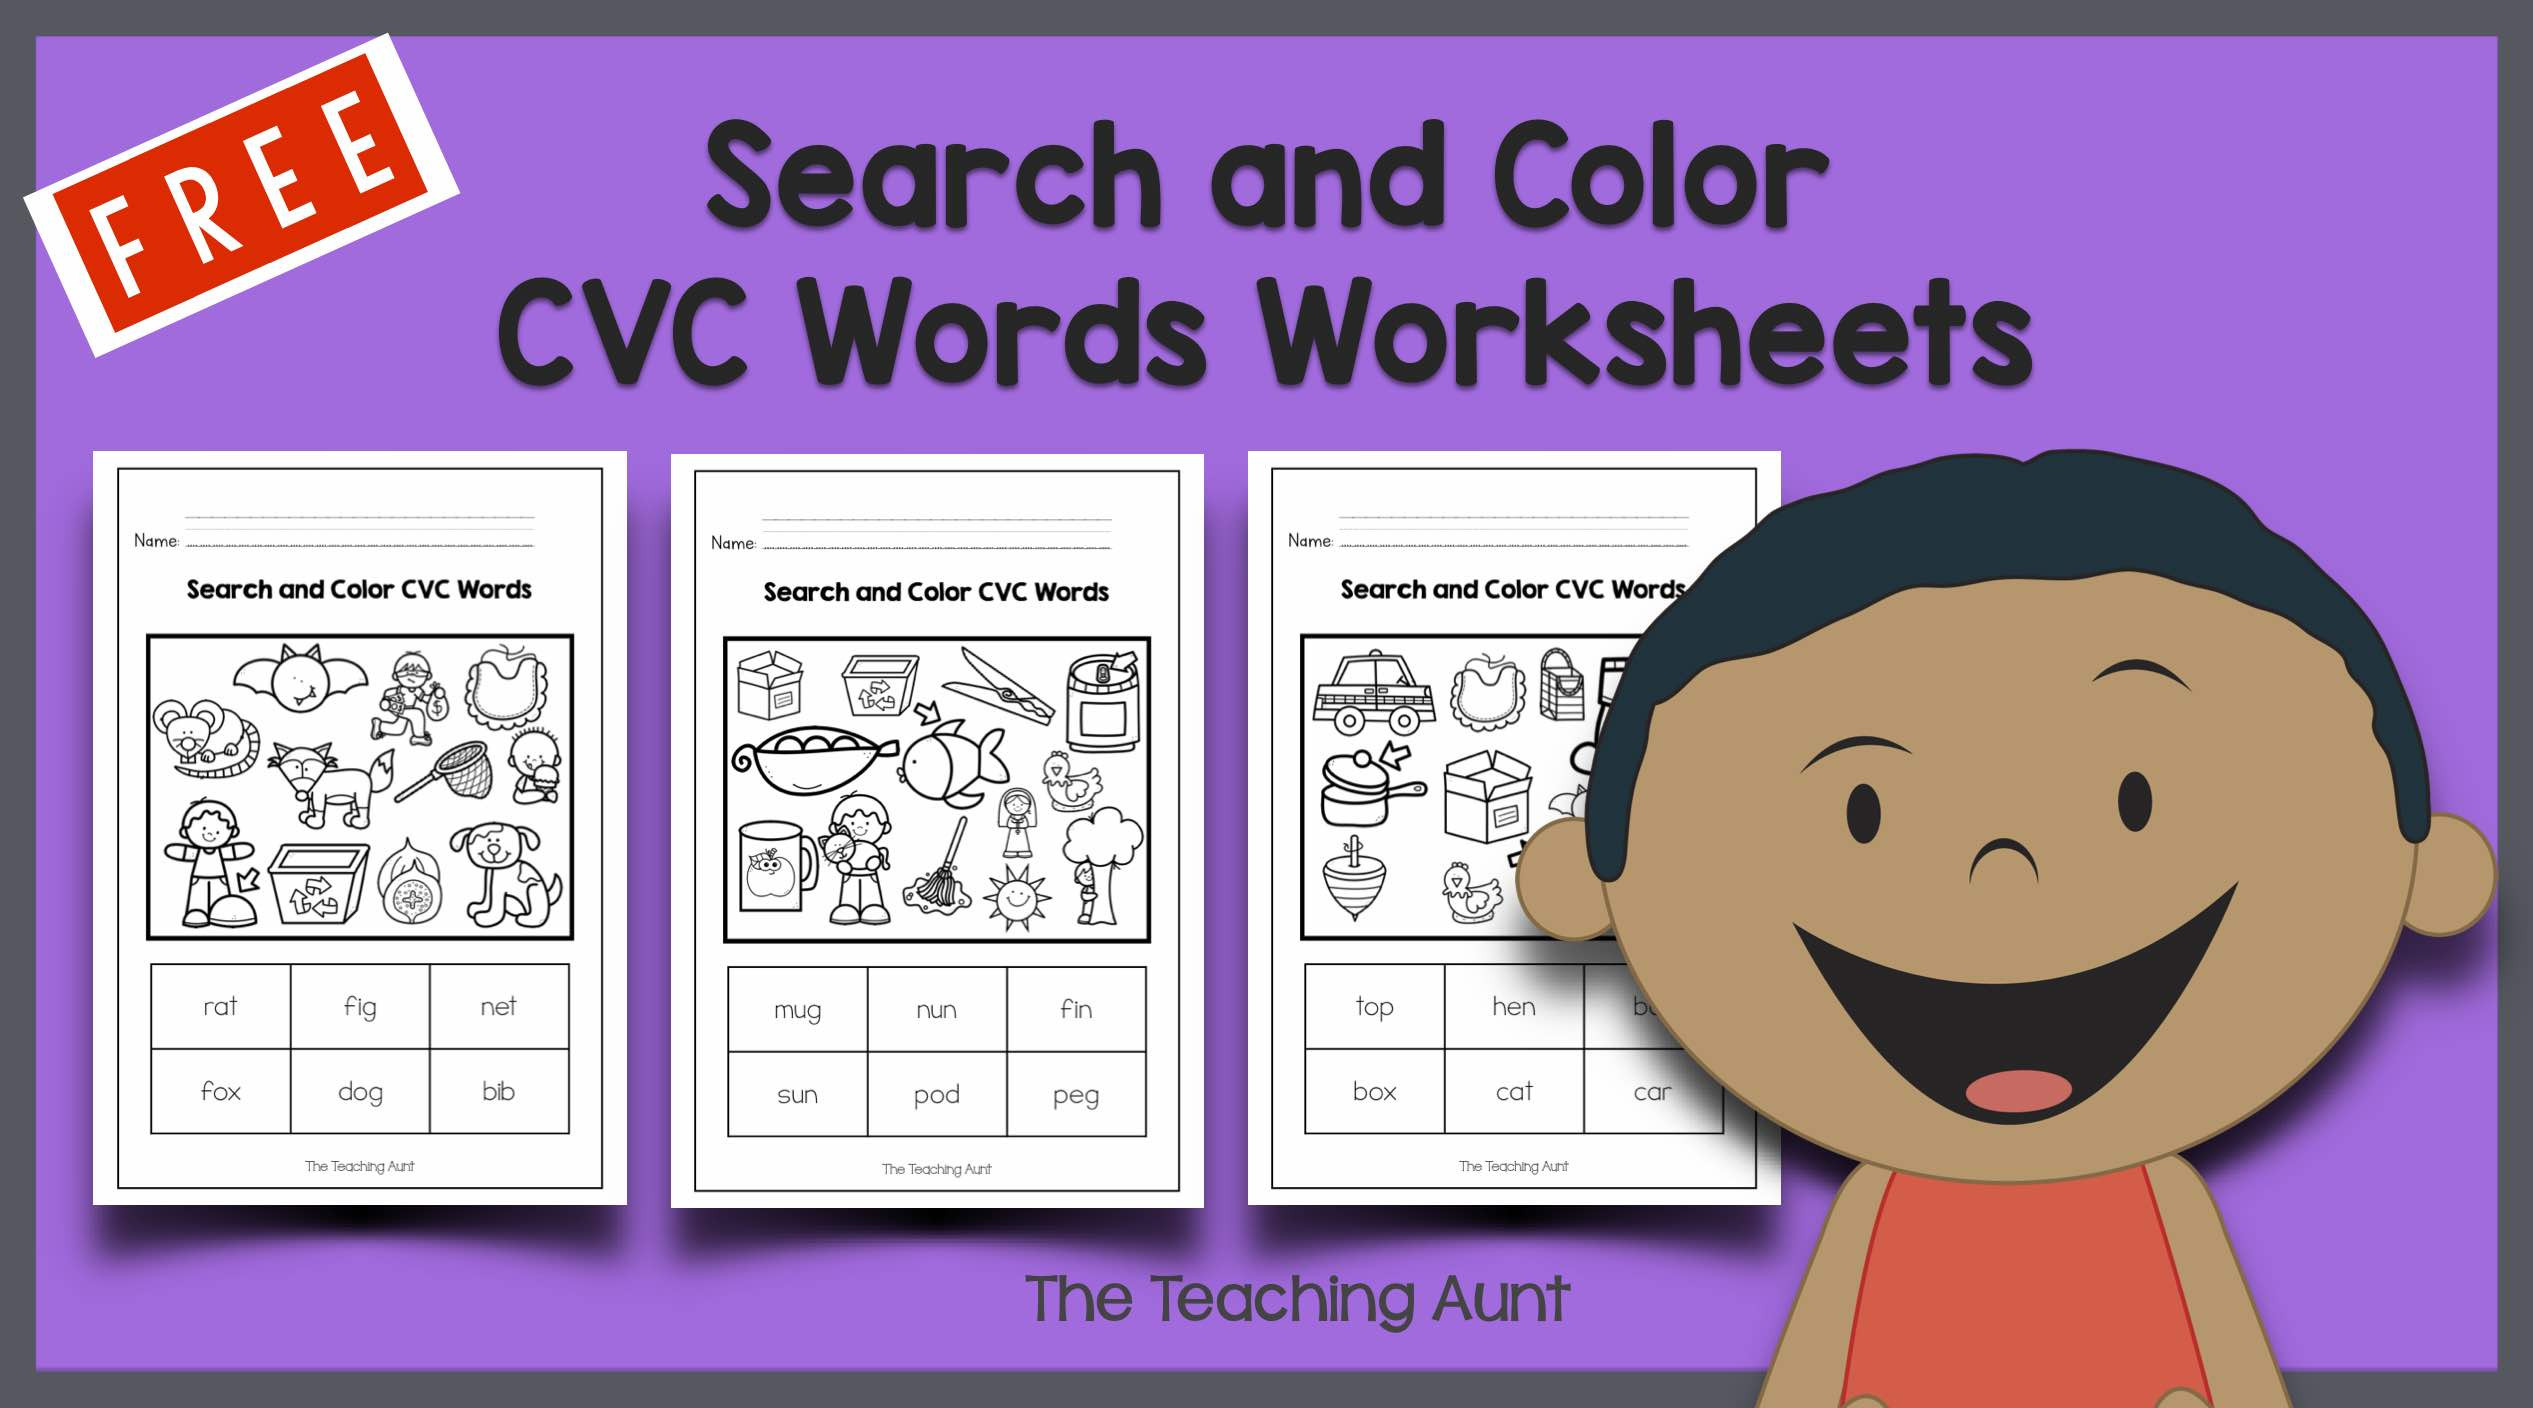 Free Printable Cvc Worksheets Search and Color Cvc Words Worksheets the Teaching Aunt